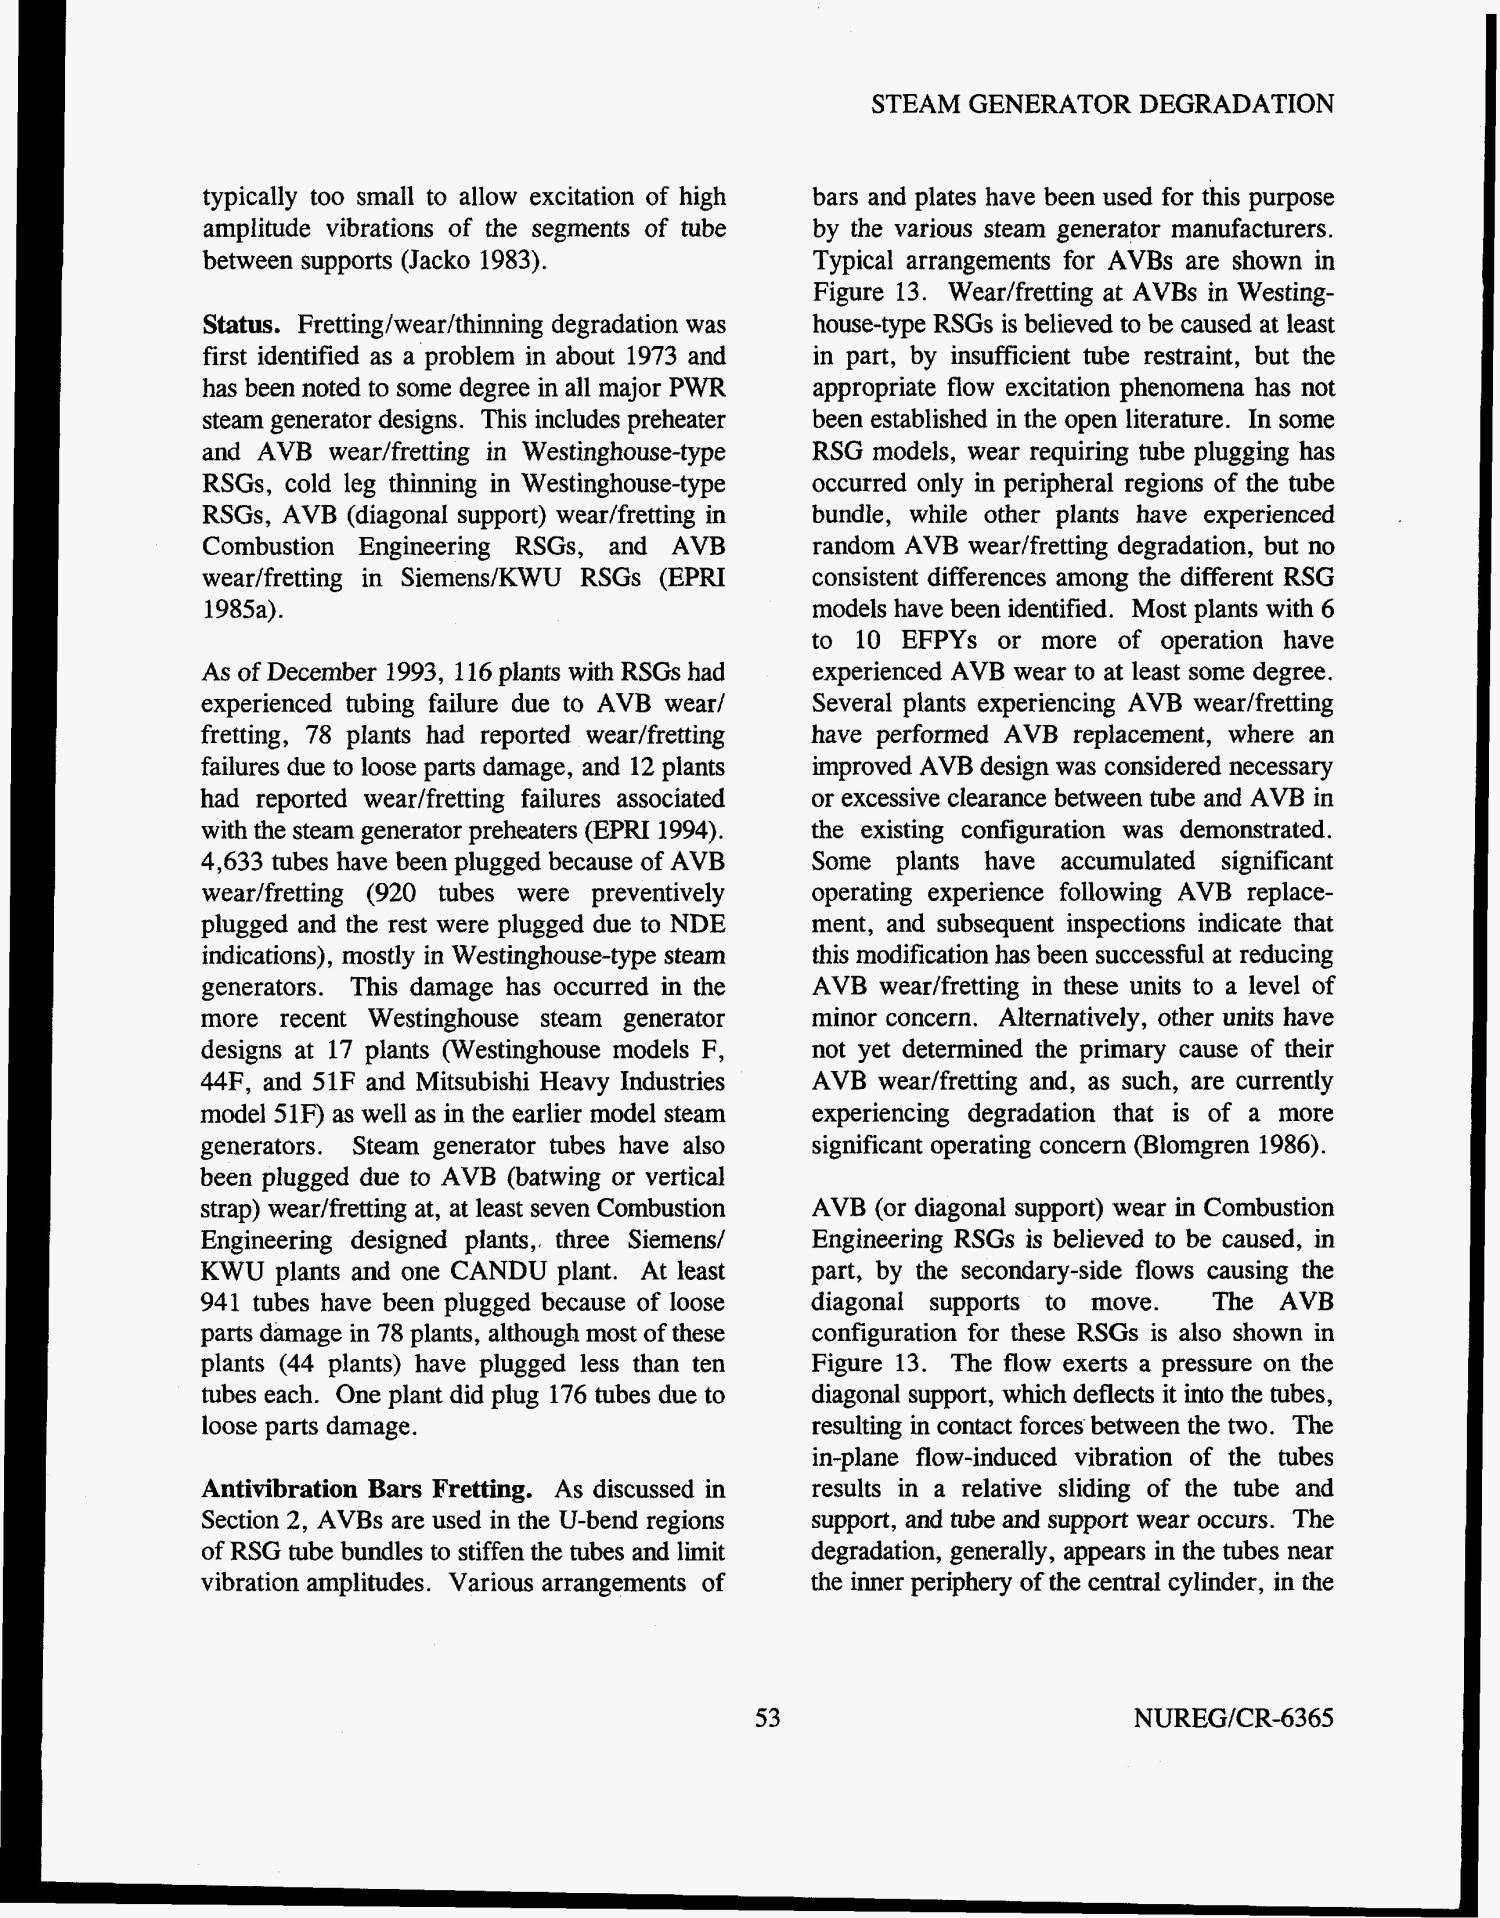 Steam generator tube failures - Page 88 of 307 - Digital Library